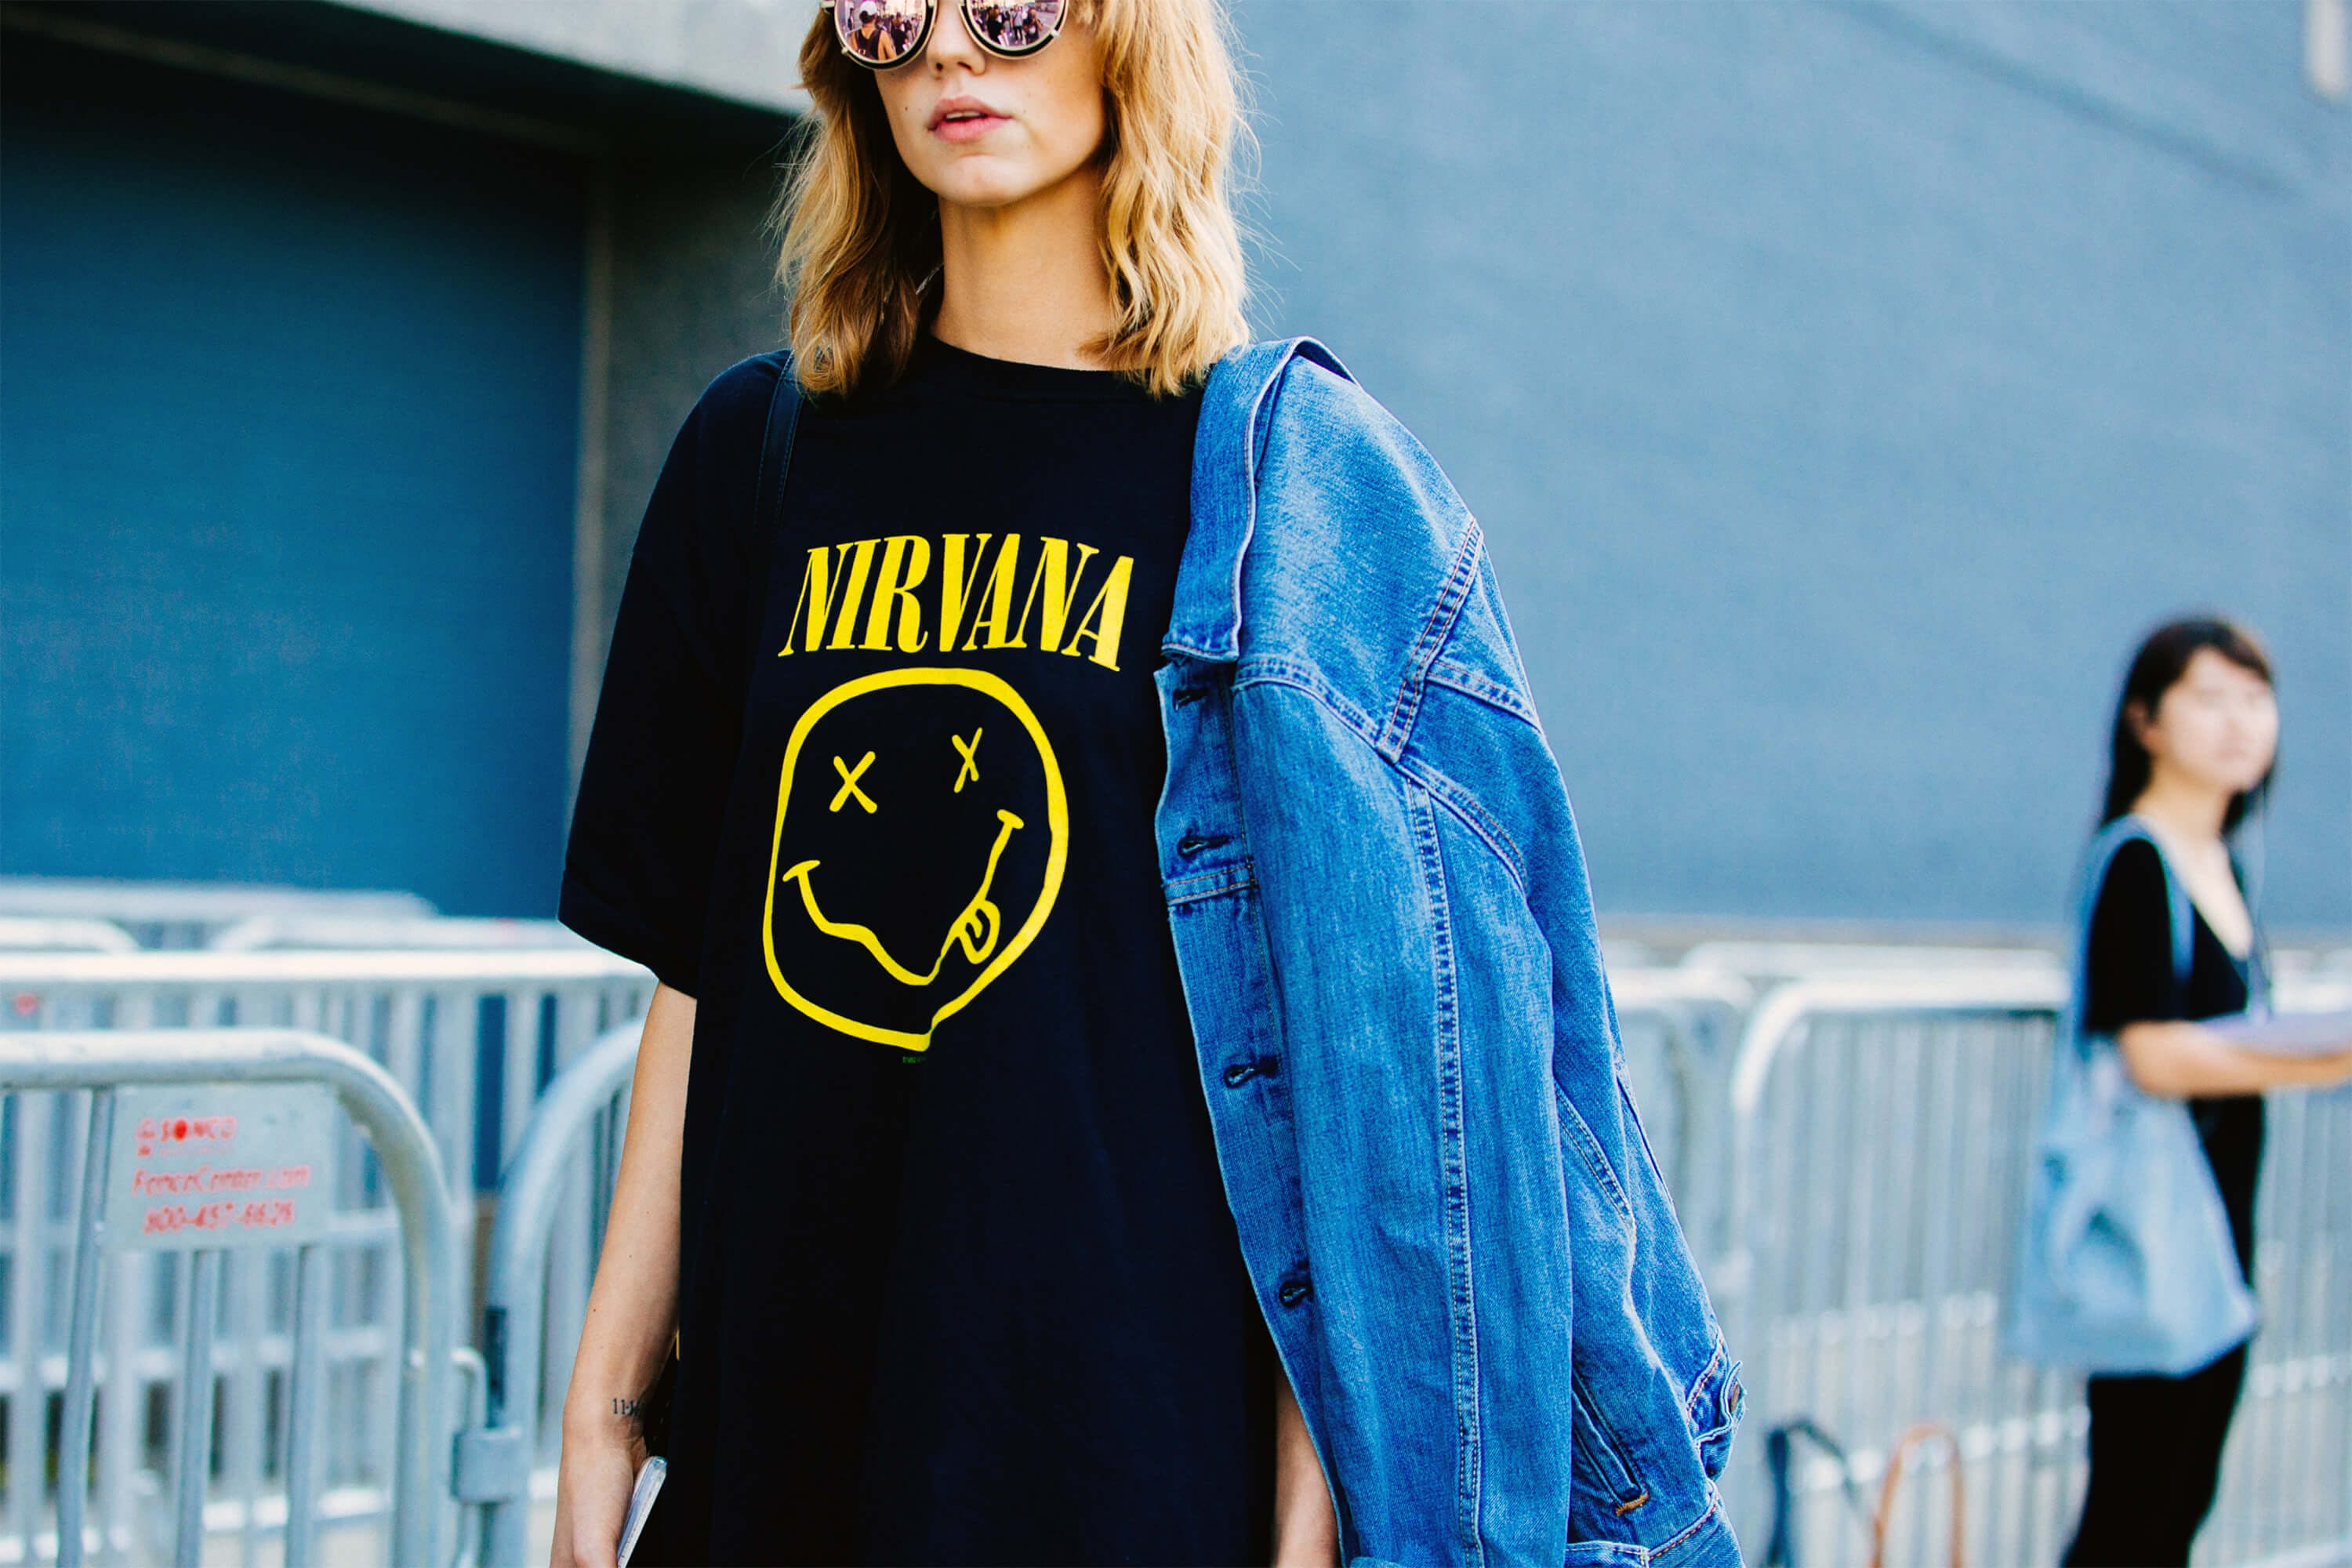 MARC JACOBS CLAIMS NIRVANA HAS NO LEGAL RIGHT TO THE SMILEY FACE LOGO